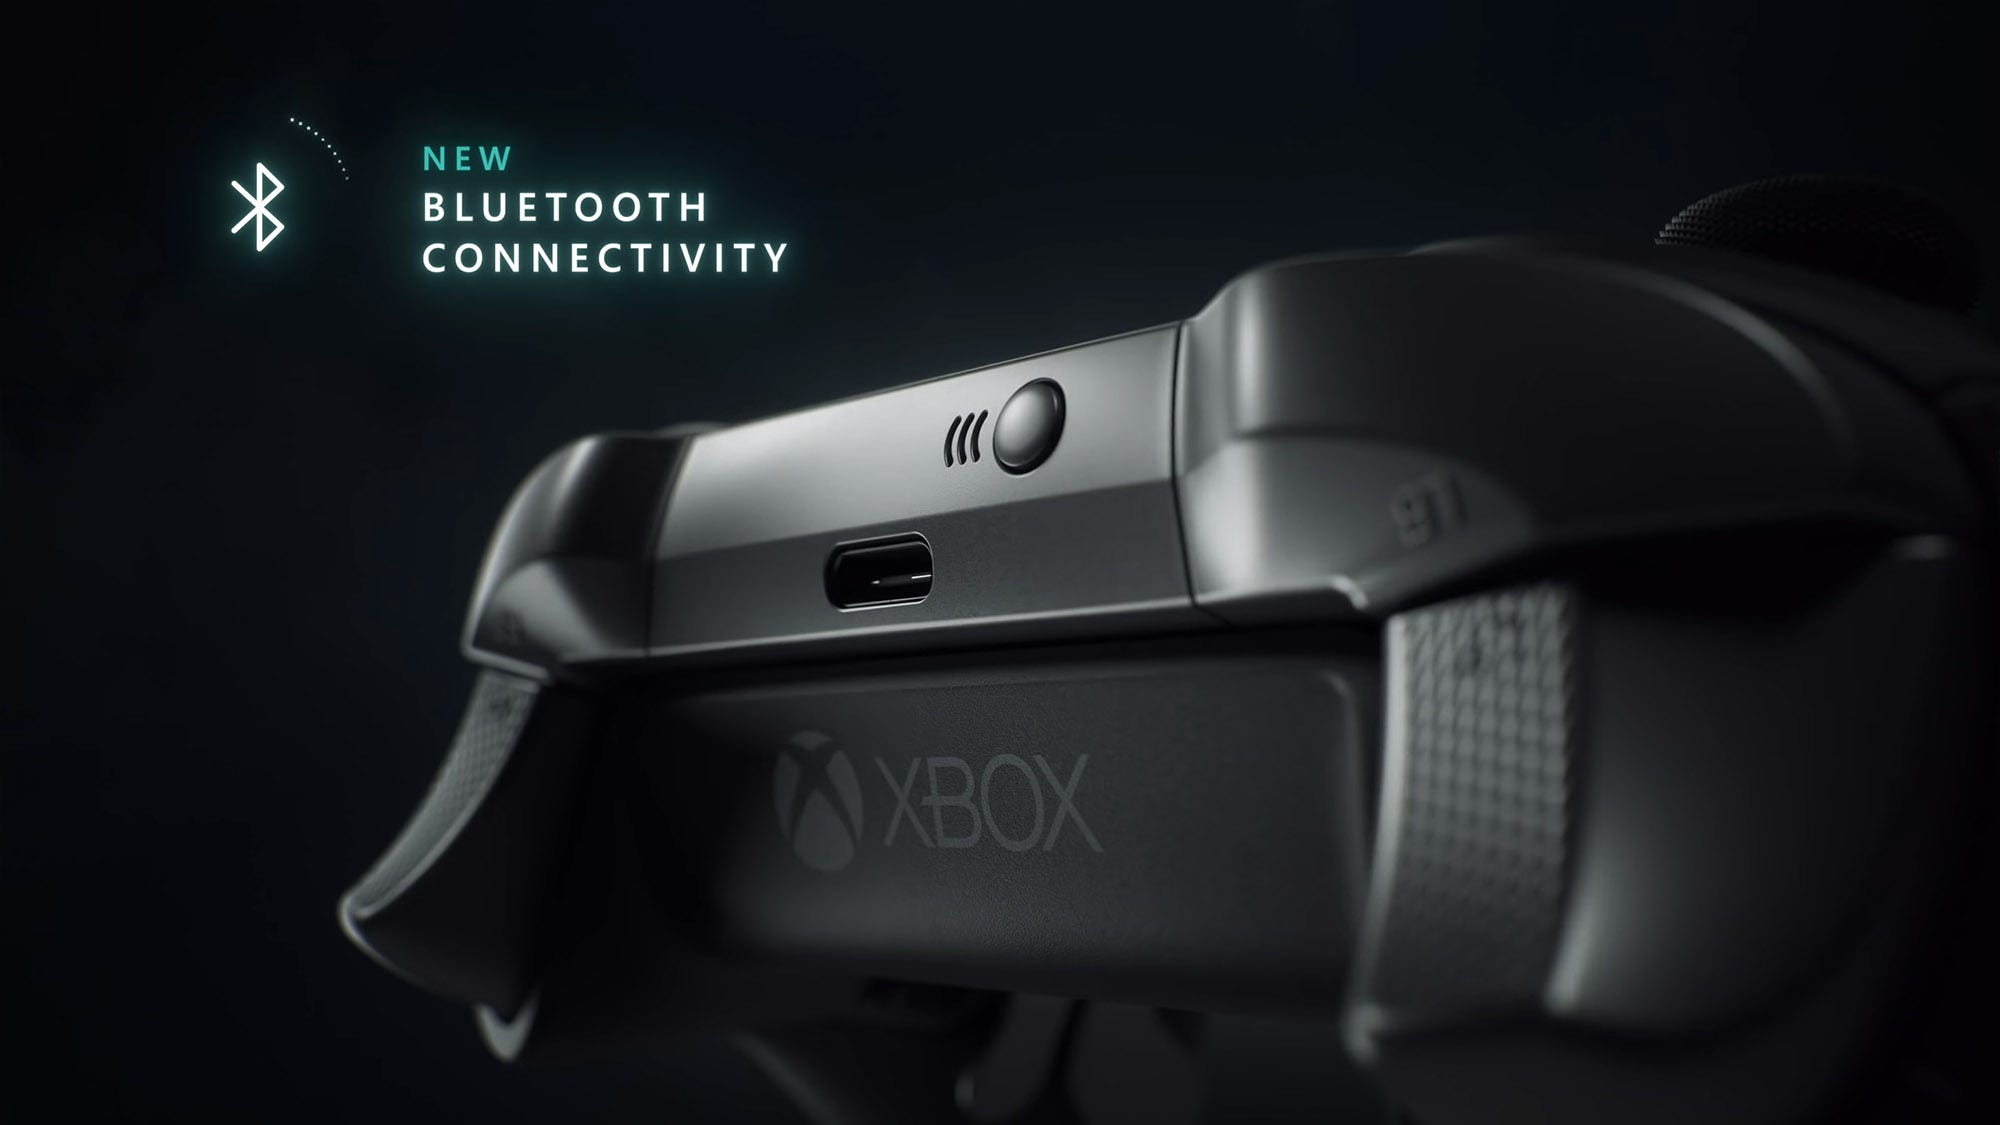 The new Xbox Elite Controller is the first Xbox device with USB-C.